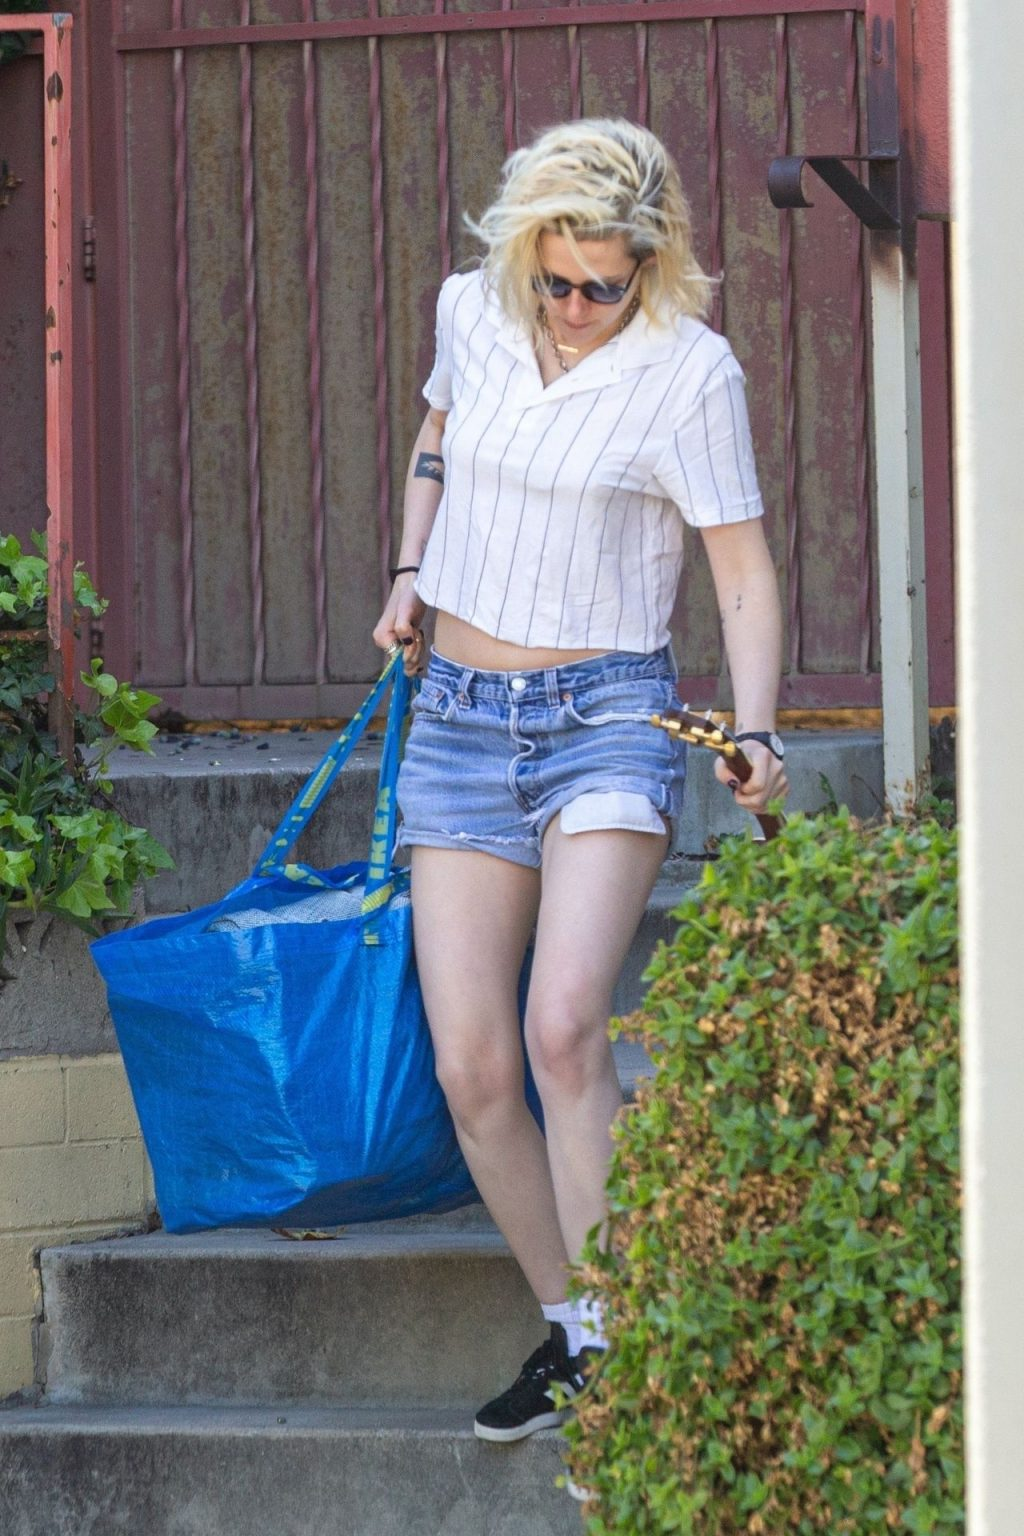 Kristen Stewart Cools Off While Helping a Friend Move in LA (56 Photos)